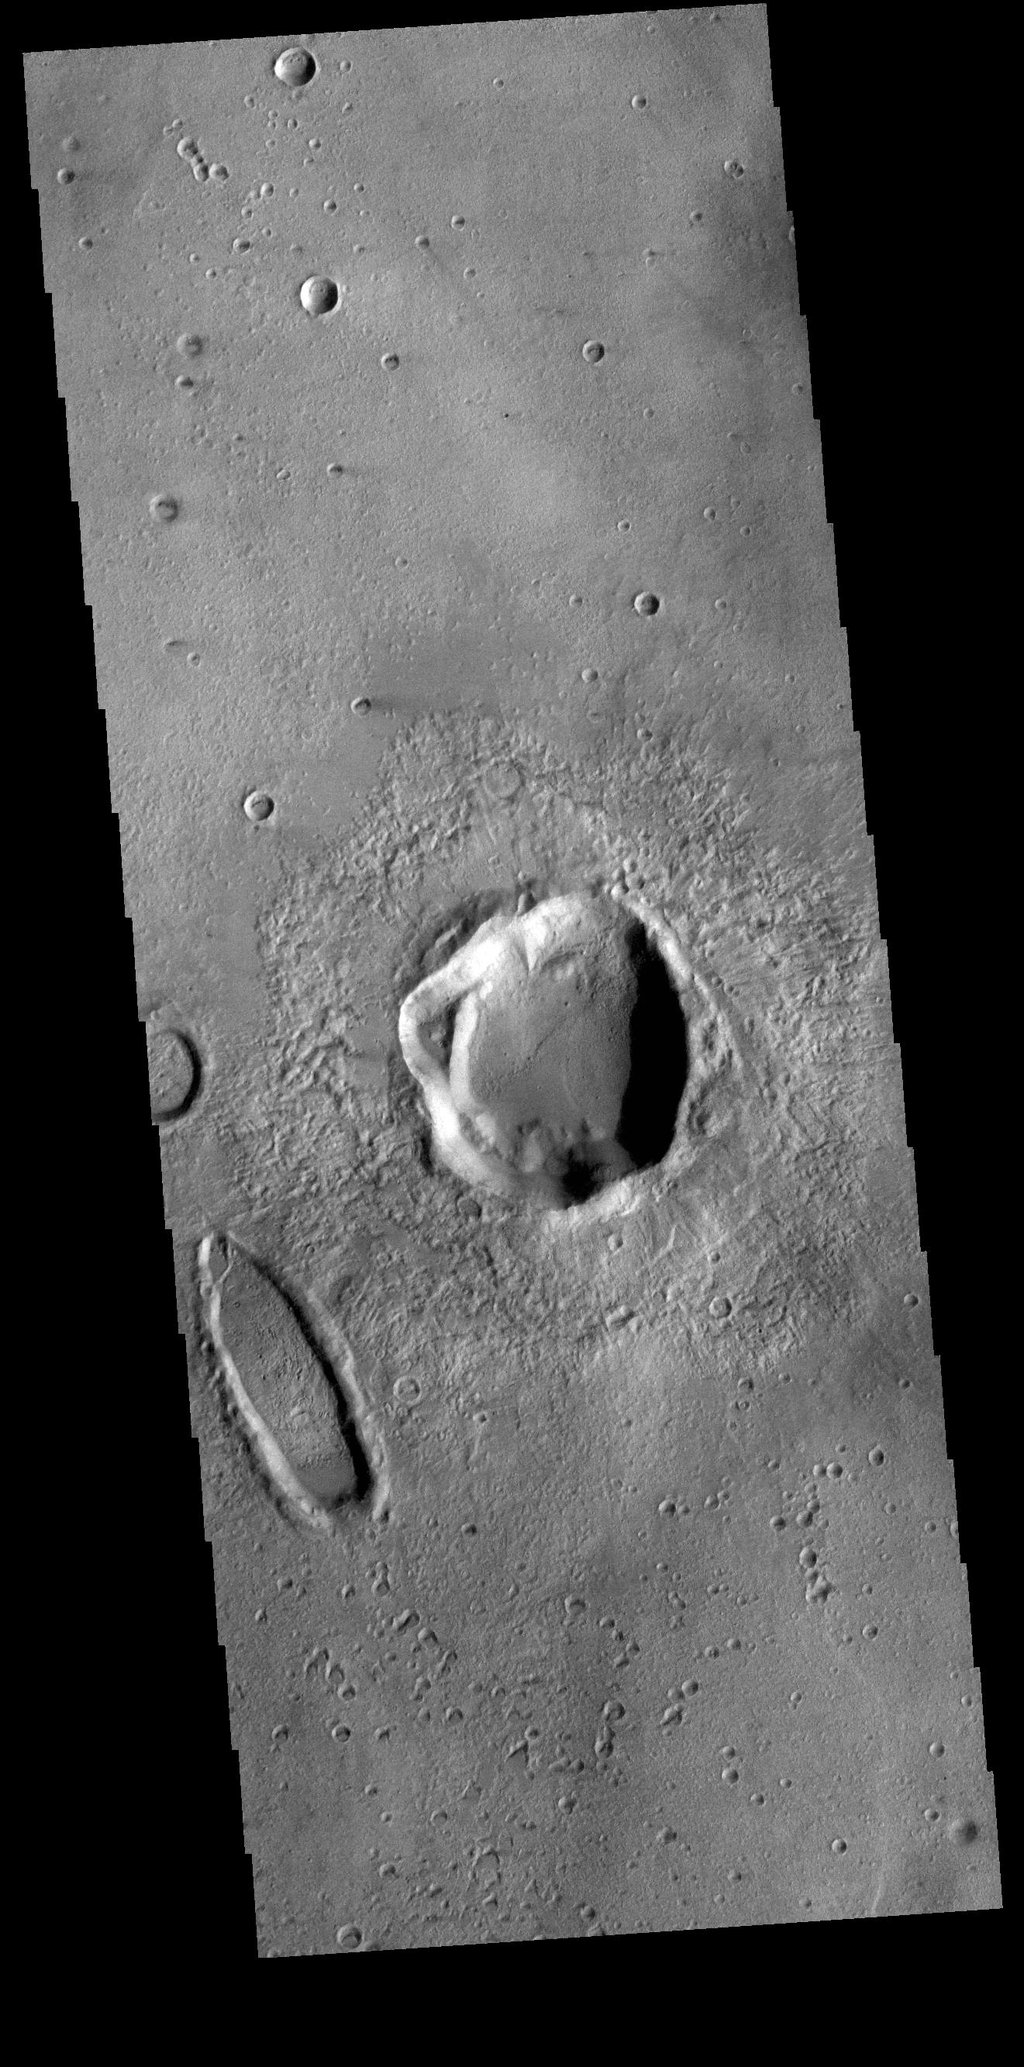 This image from NASA's Mars Odyssey shows a portion of Noachis Terra to the northeast of Argyre Planitia.